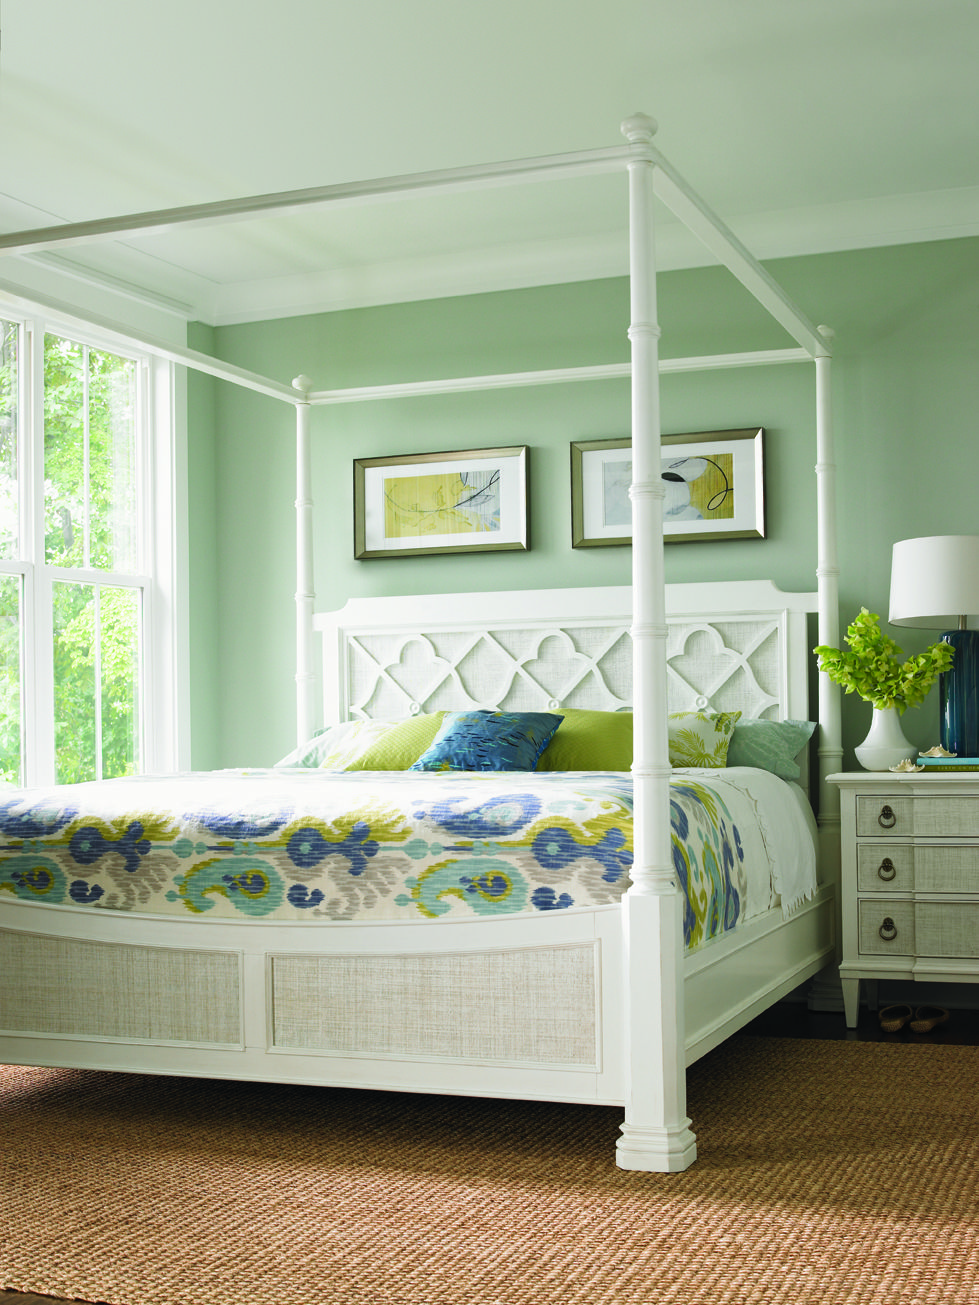 Tommy bahama home ivory key collection lexington - Tommy bahama beach house bedroom ...